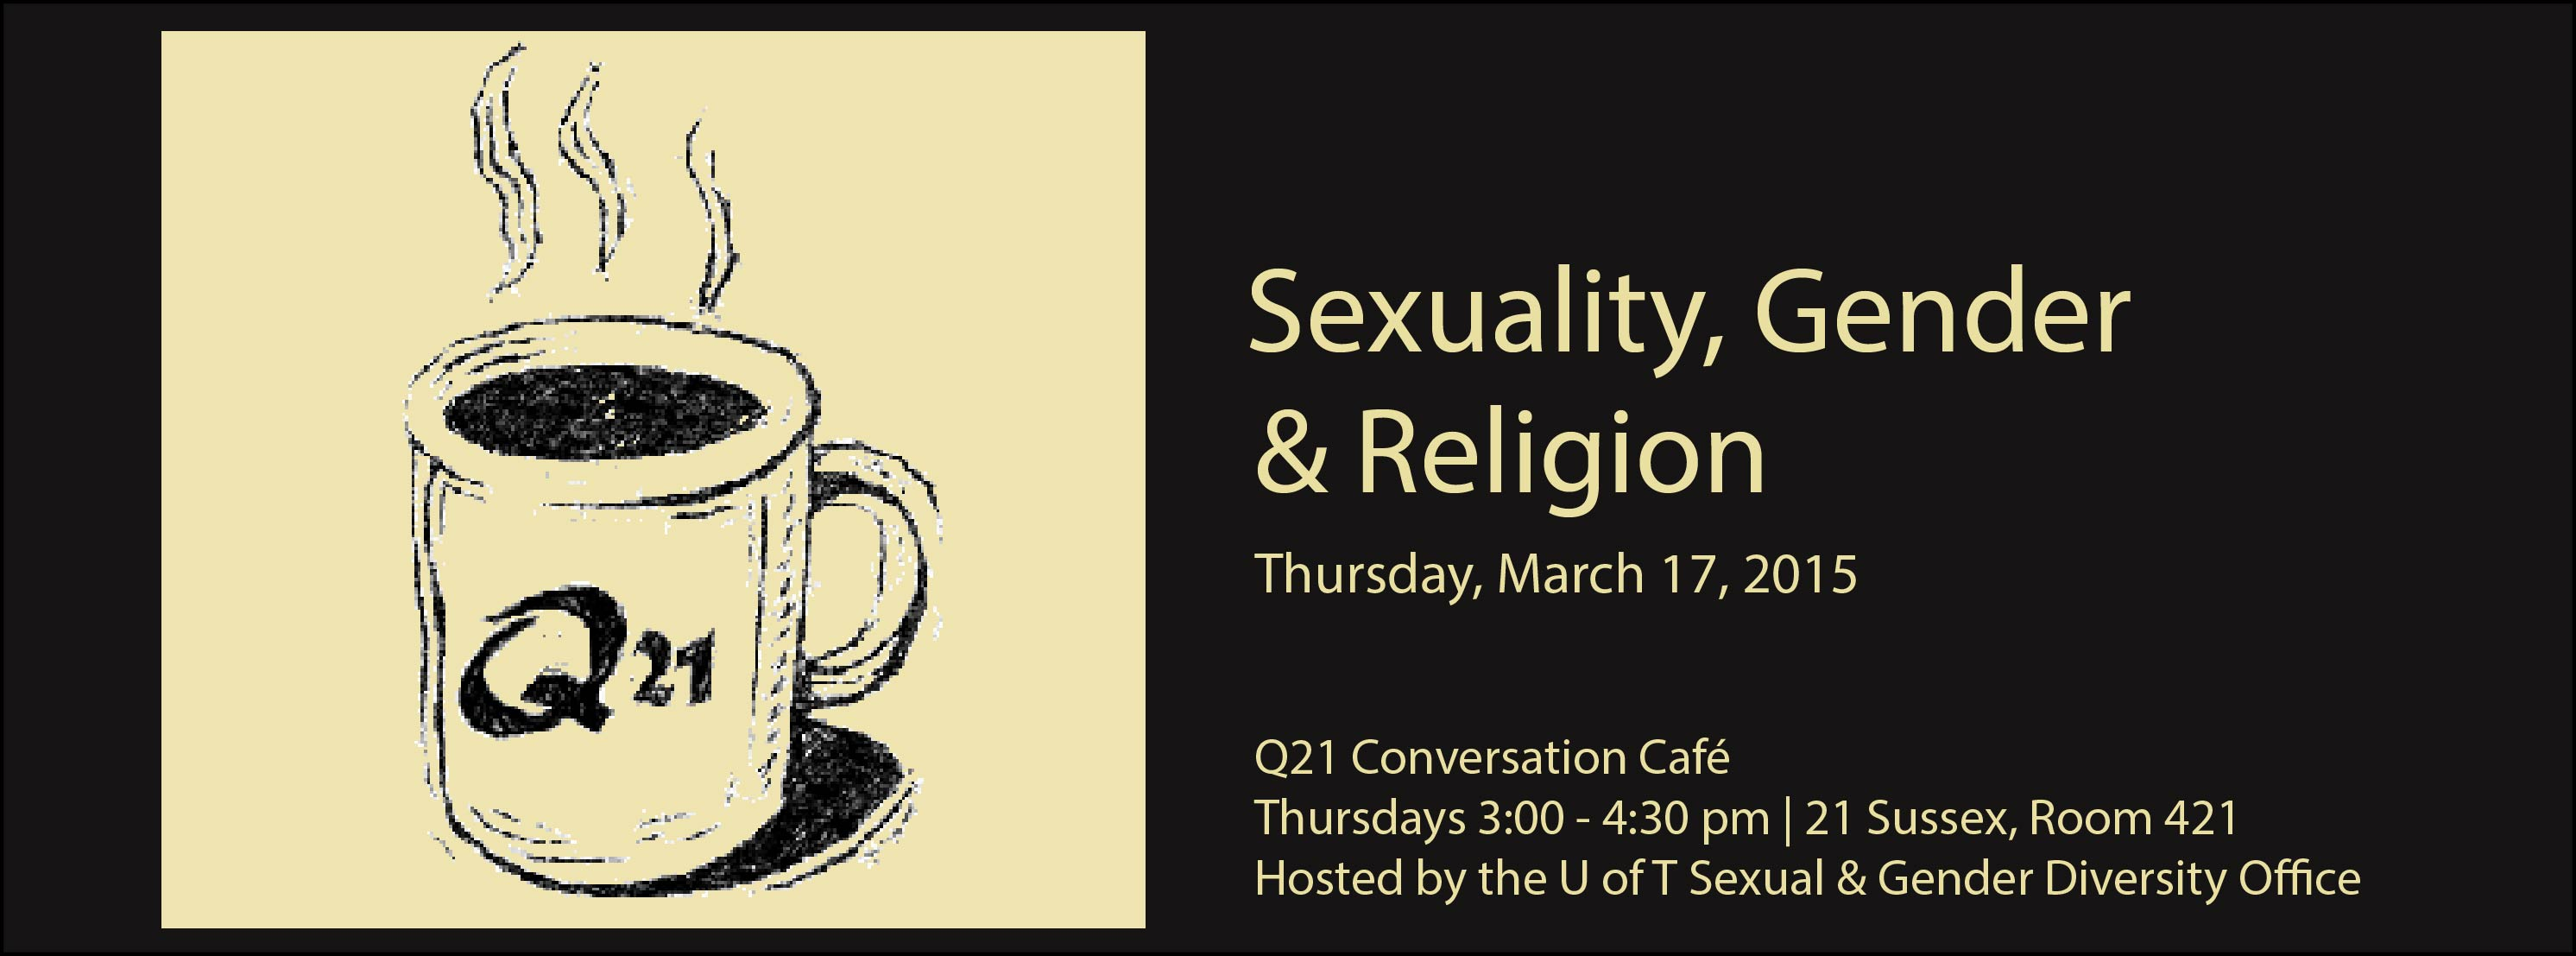 Q21 Banner for Edits - Sexuality, Gender & Religion